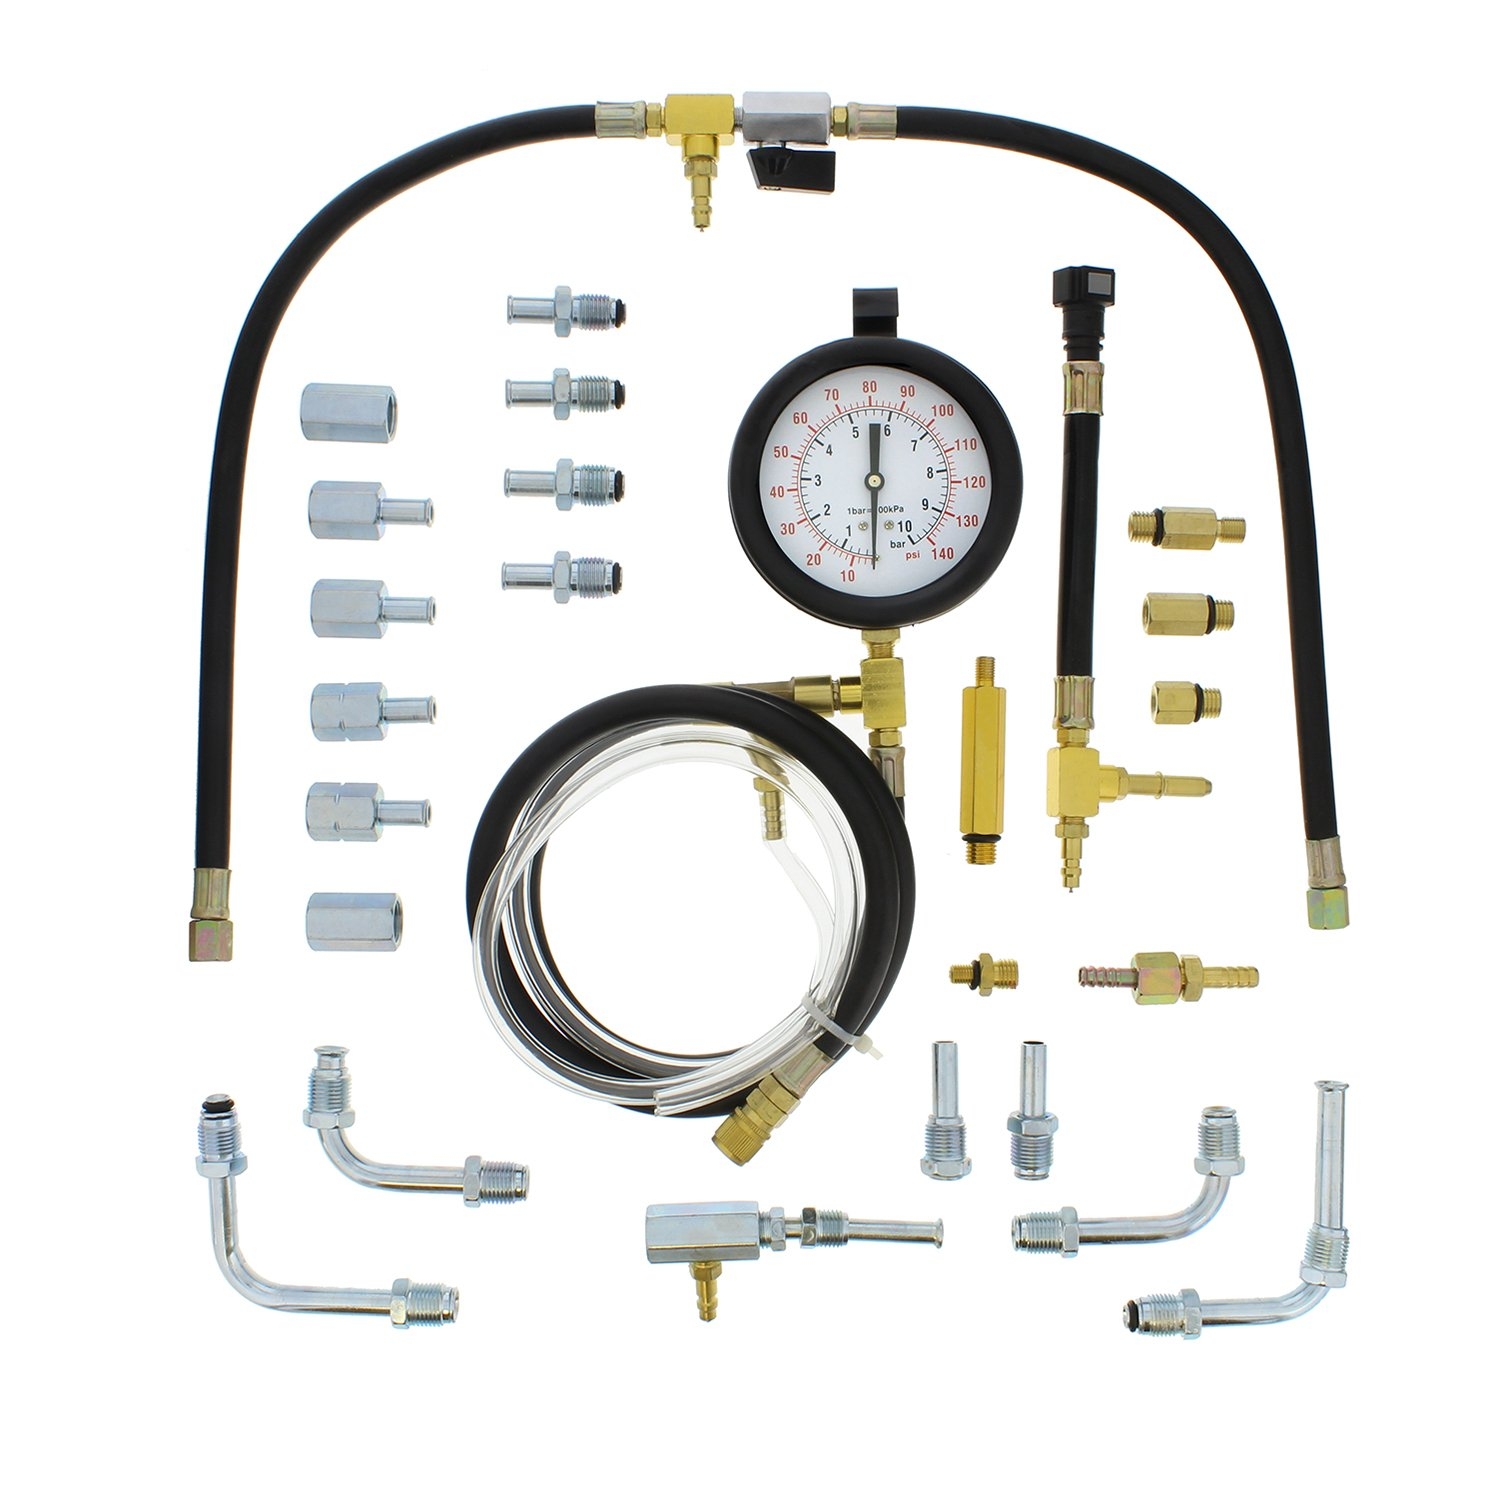 Hose Tubing Universal Injector Set of Dual PSI//Bar Gauge ABN Master Fuel Injection Pressure Test Kit Fittings